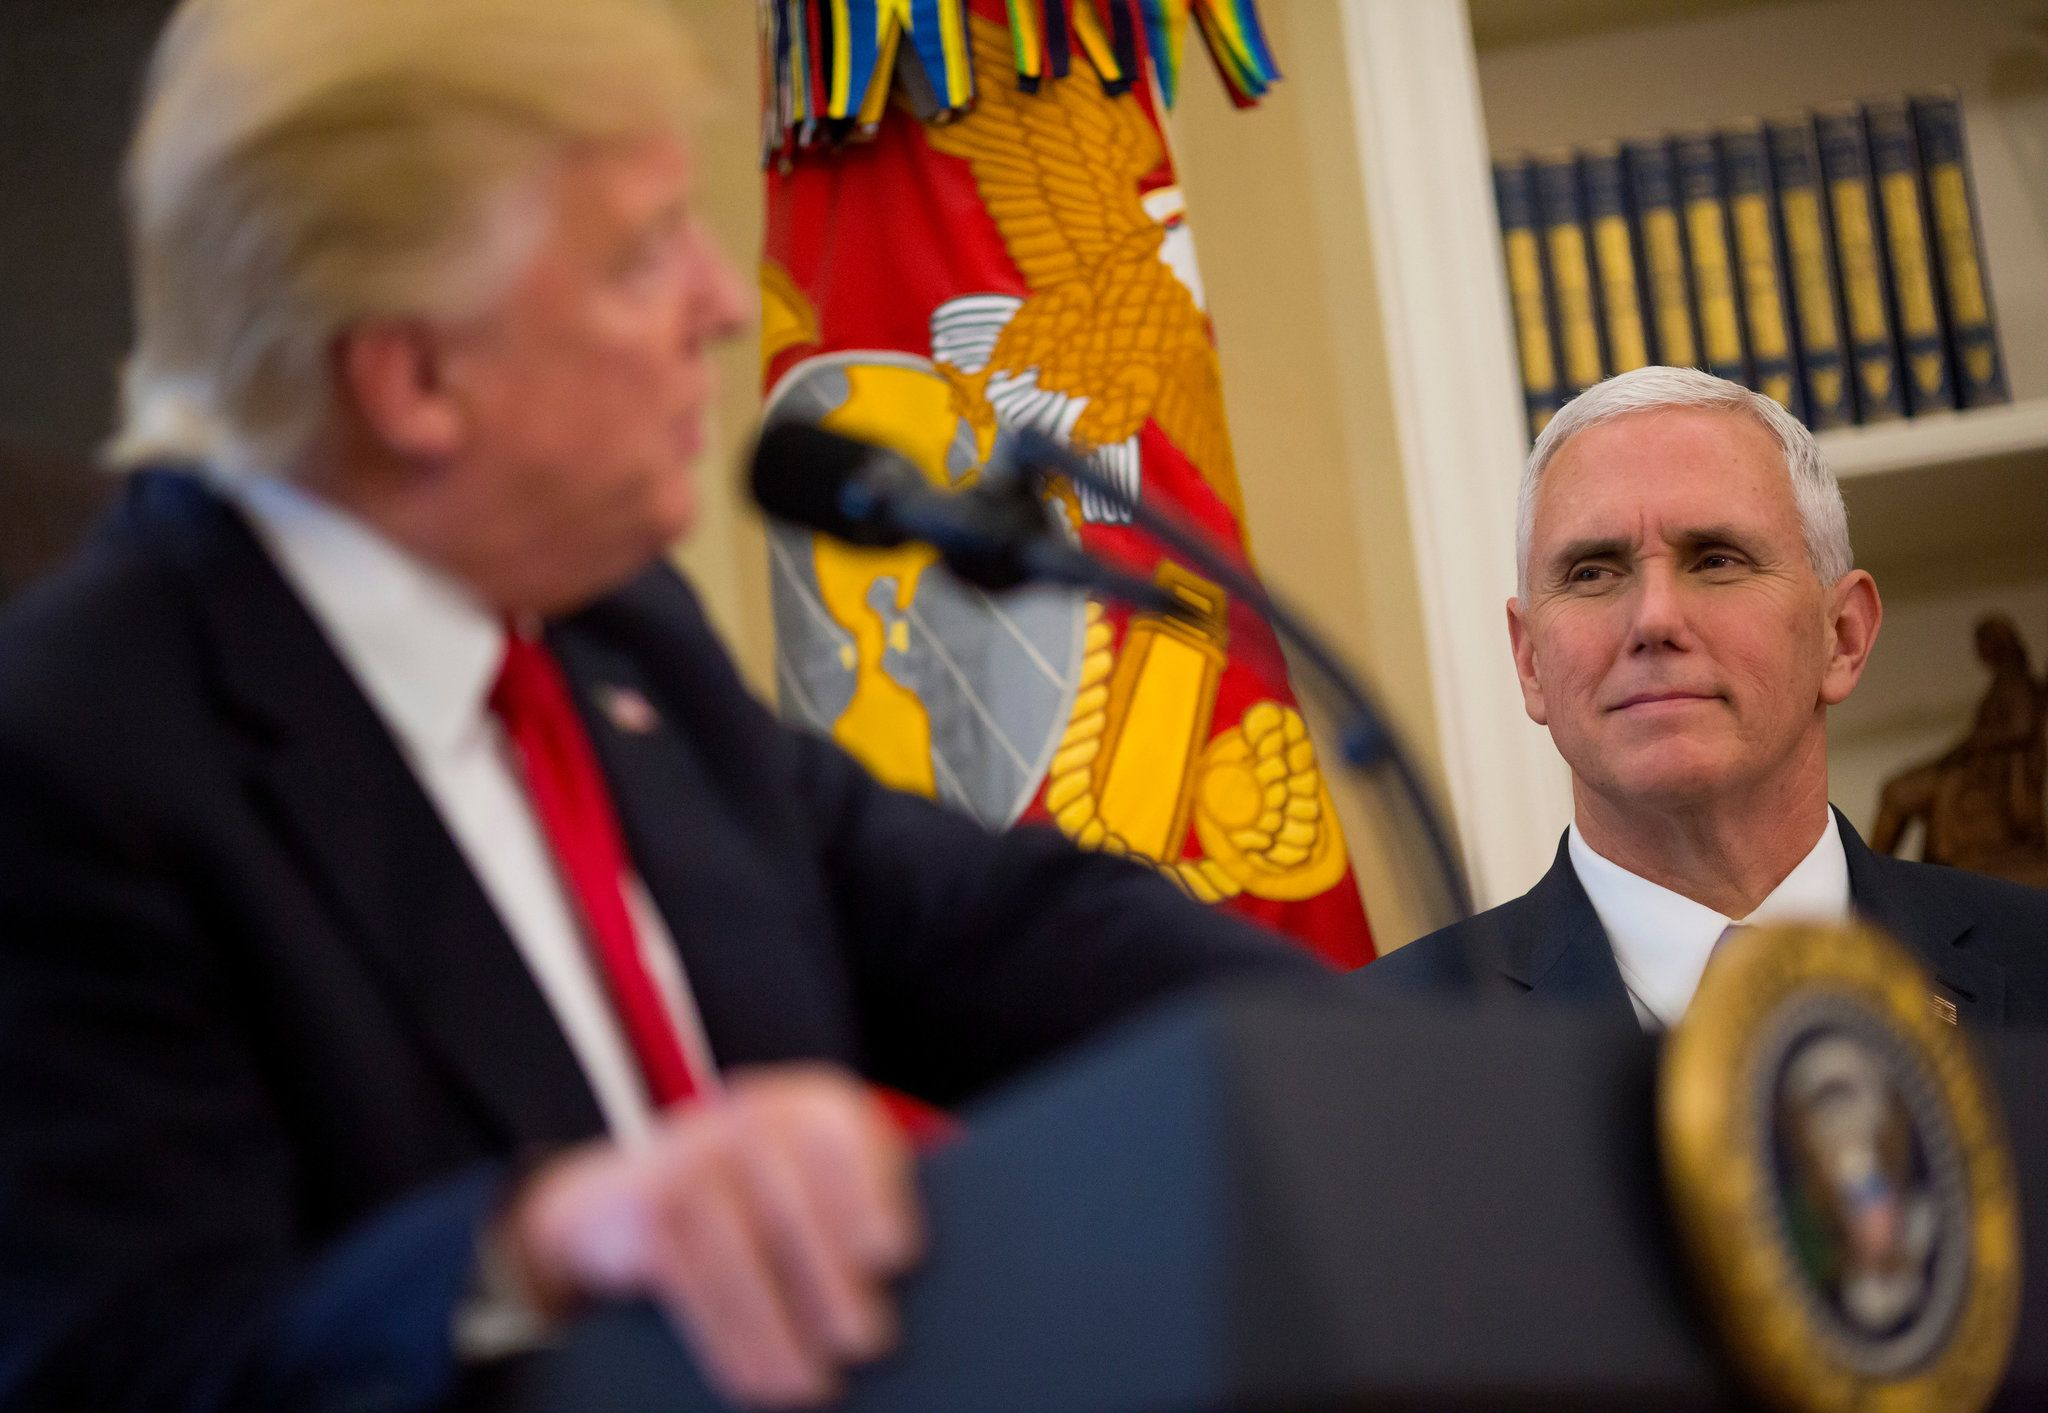 Donald J. Trump's presidency may only be warming up, but in public and private, Republicans are maneuvering for his job, whether or not he runs for re-election.